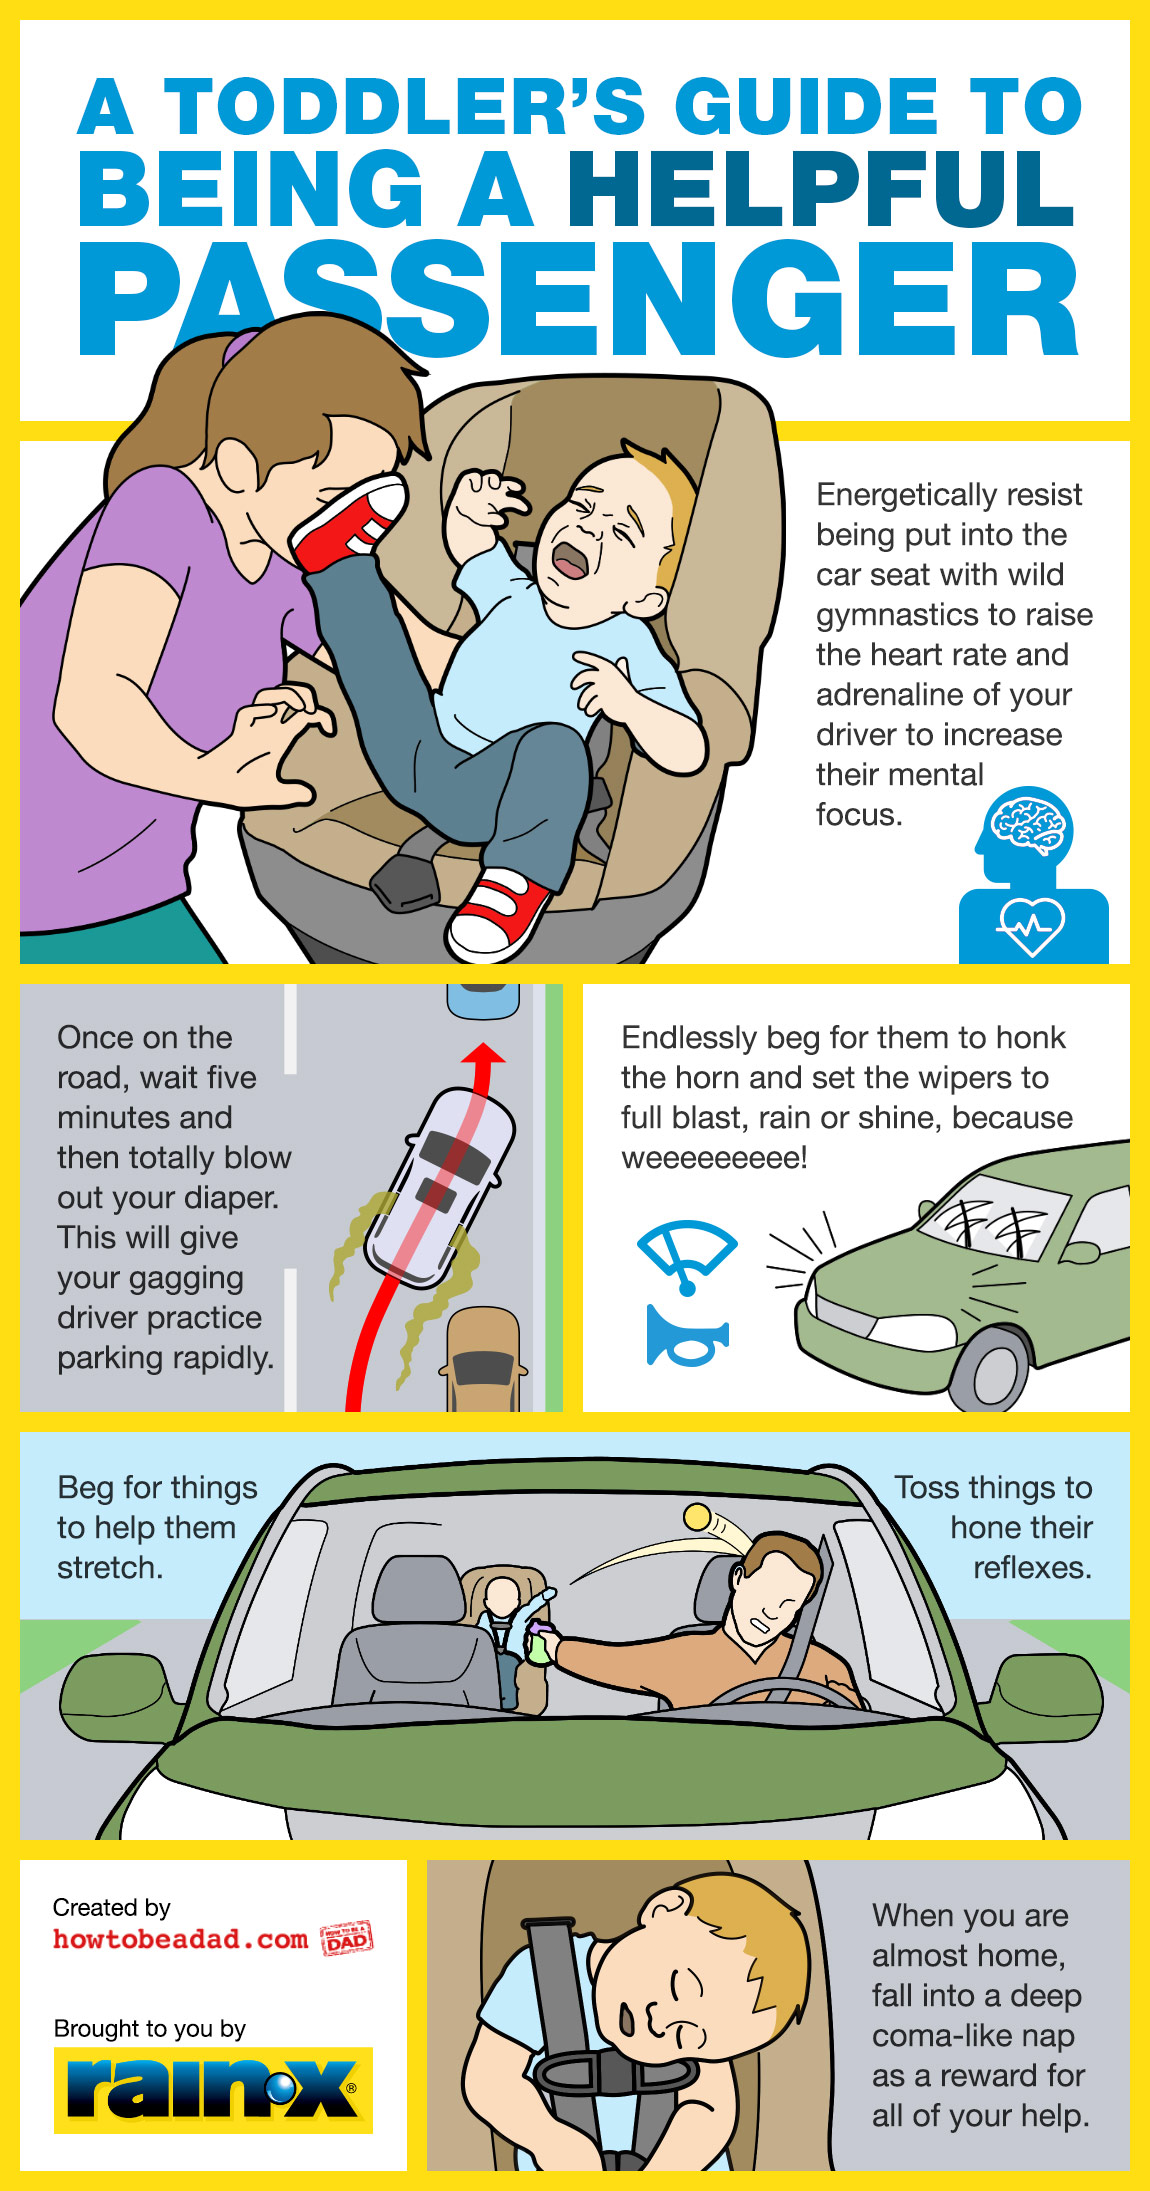 a-toddlers-guide-to-being-a-helpful-passenger2